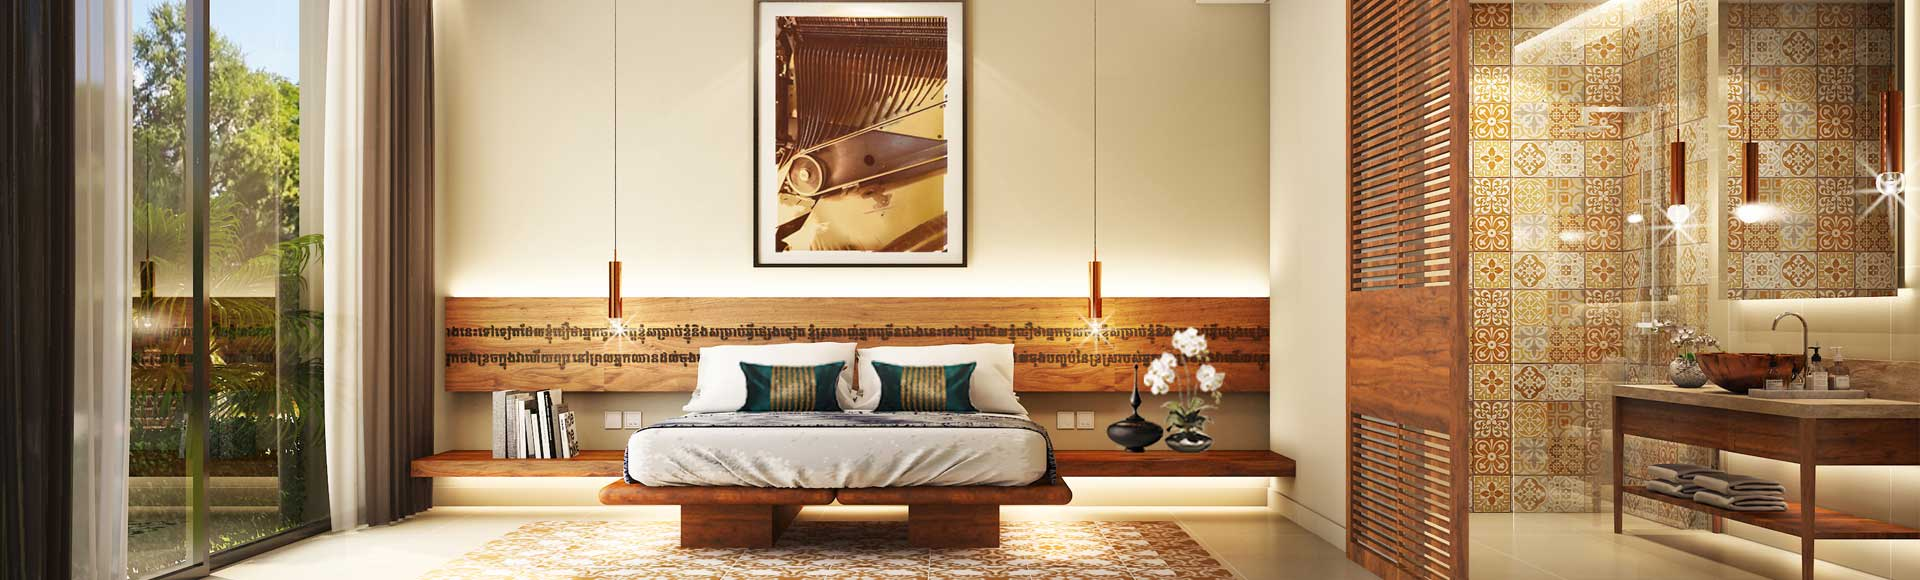 Avani Deluxe Room at FCC Angkor, Managed by Avani Hotels & Resorts